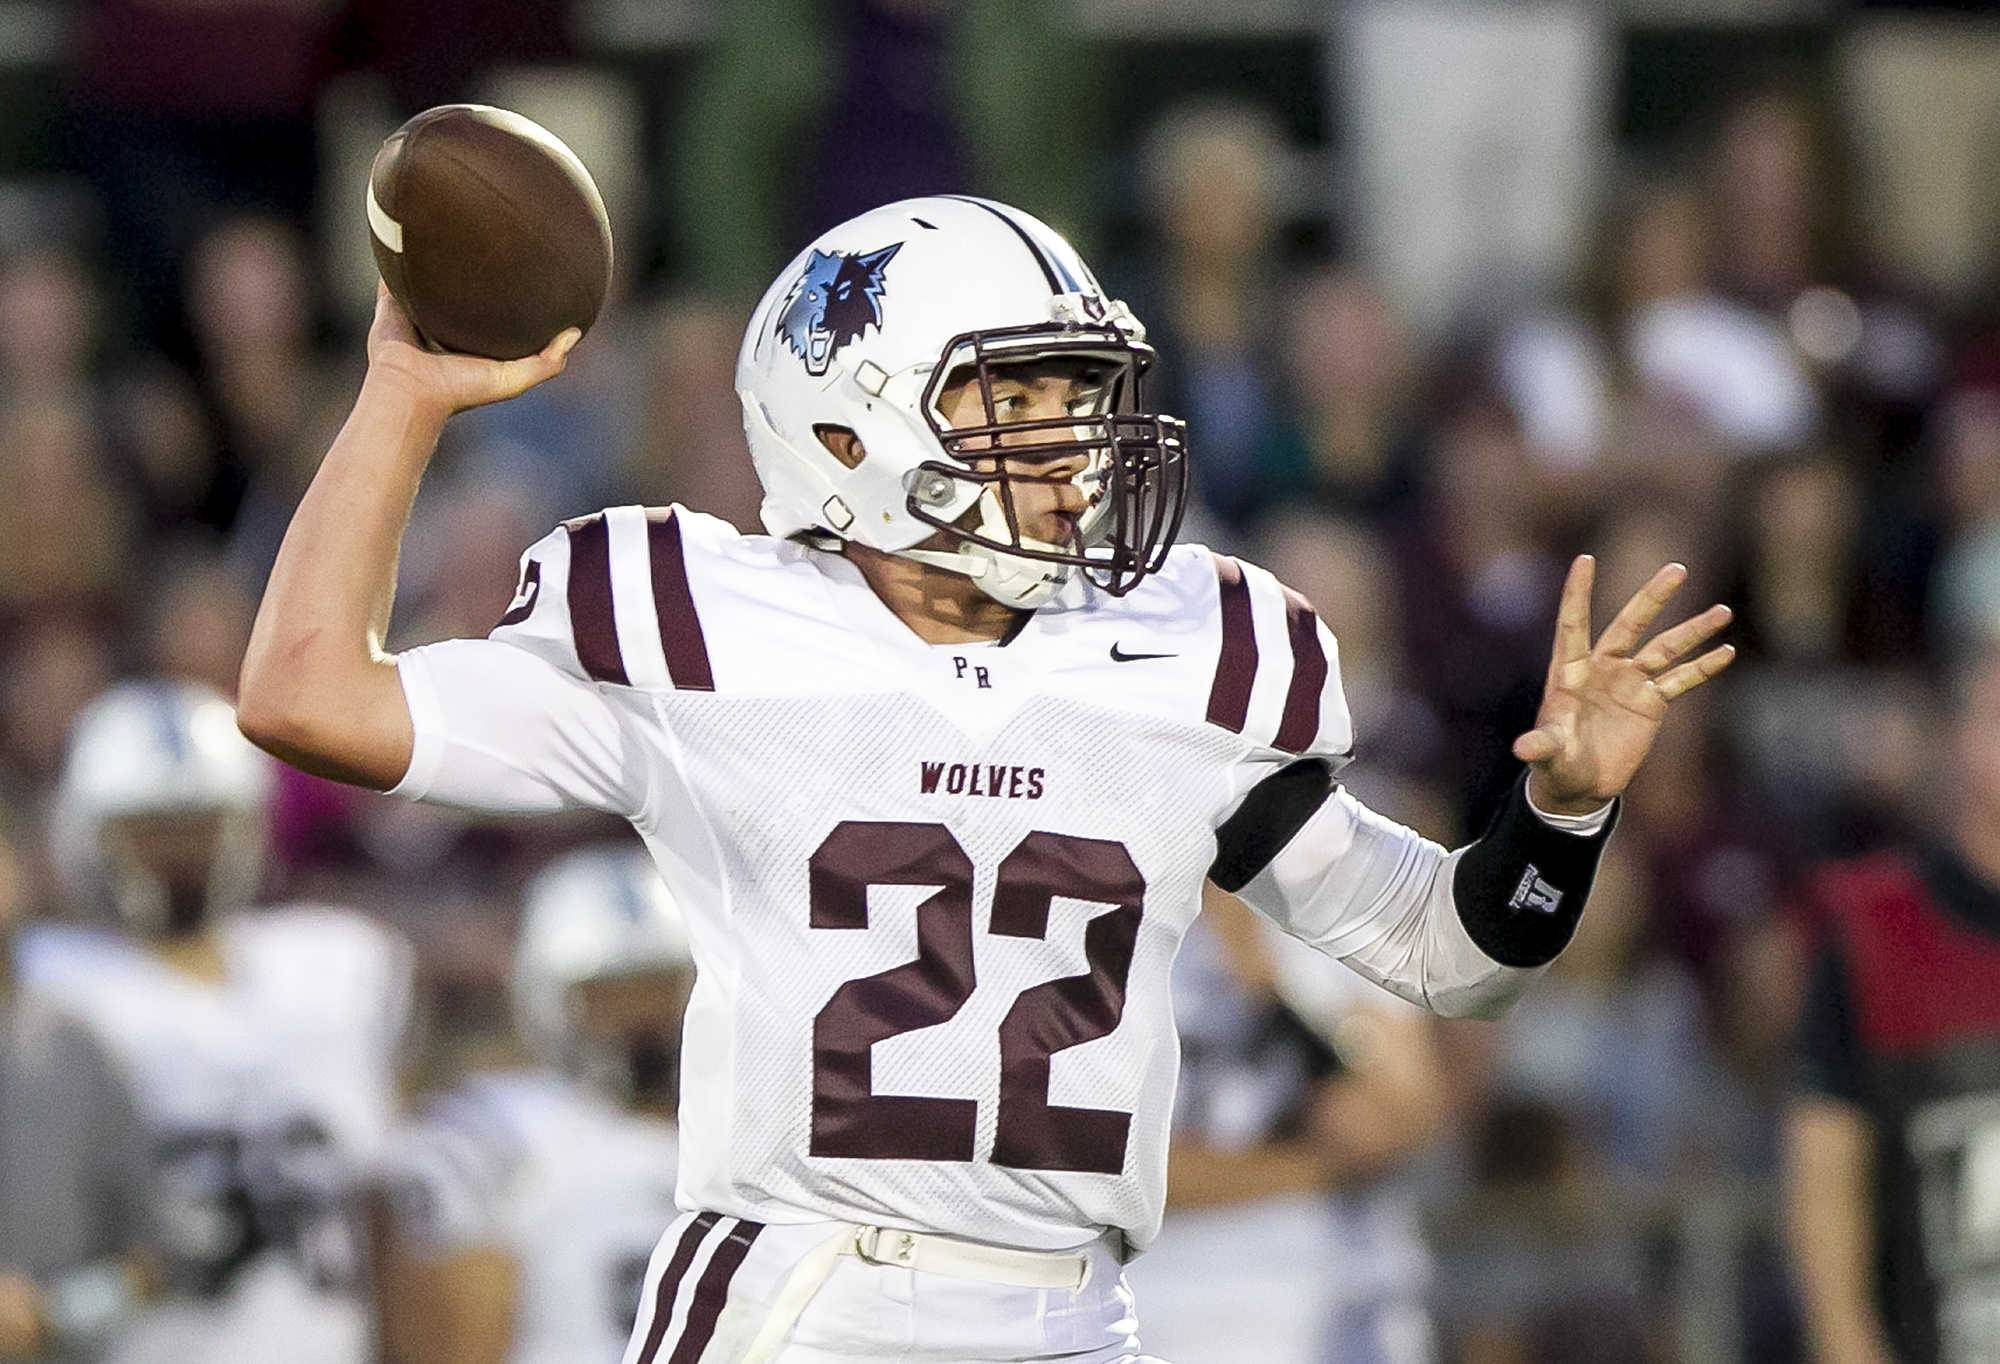 Prairie Ridge's Samson Evans throws a pass against Cary-Grove last season. Evans, an Iowa recruit who led the Wolves to the Class 6A state title last season returns to quarterback PR in 2017.